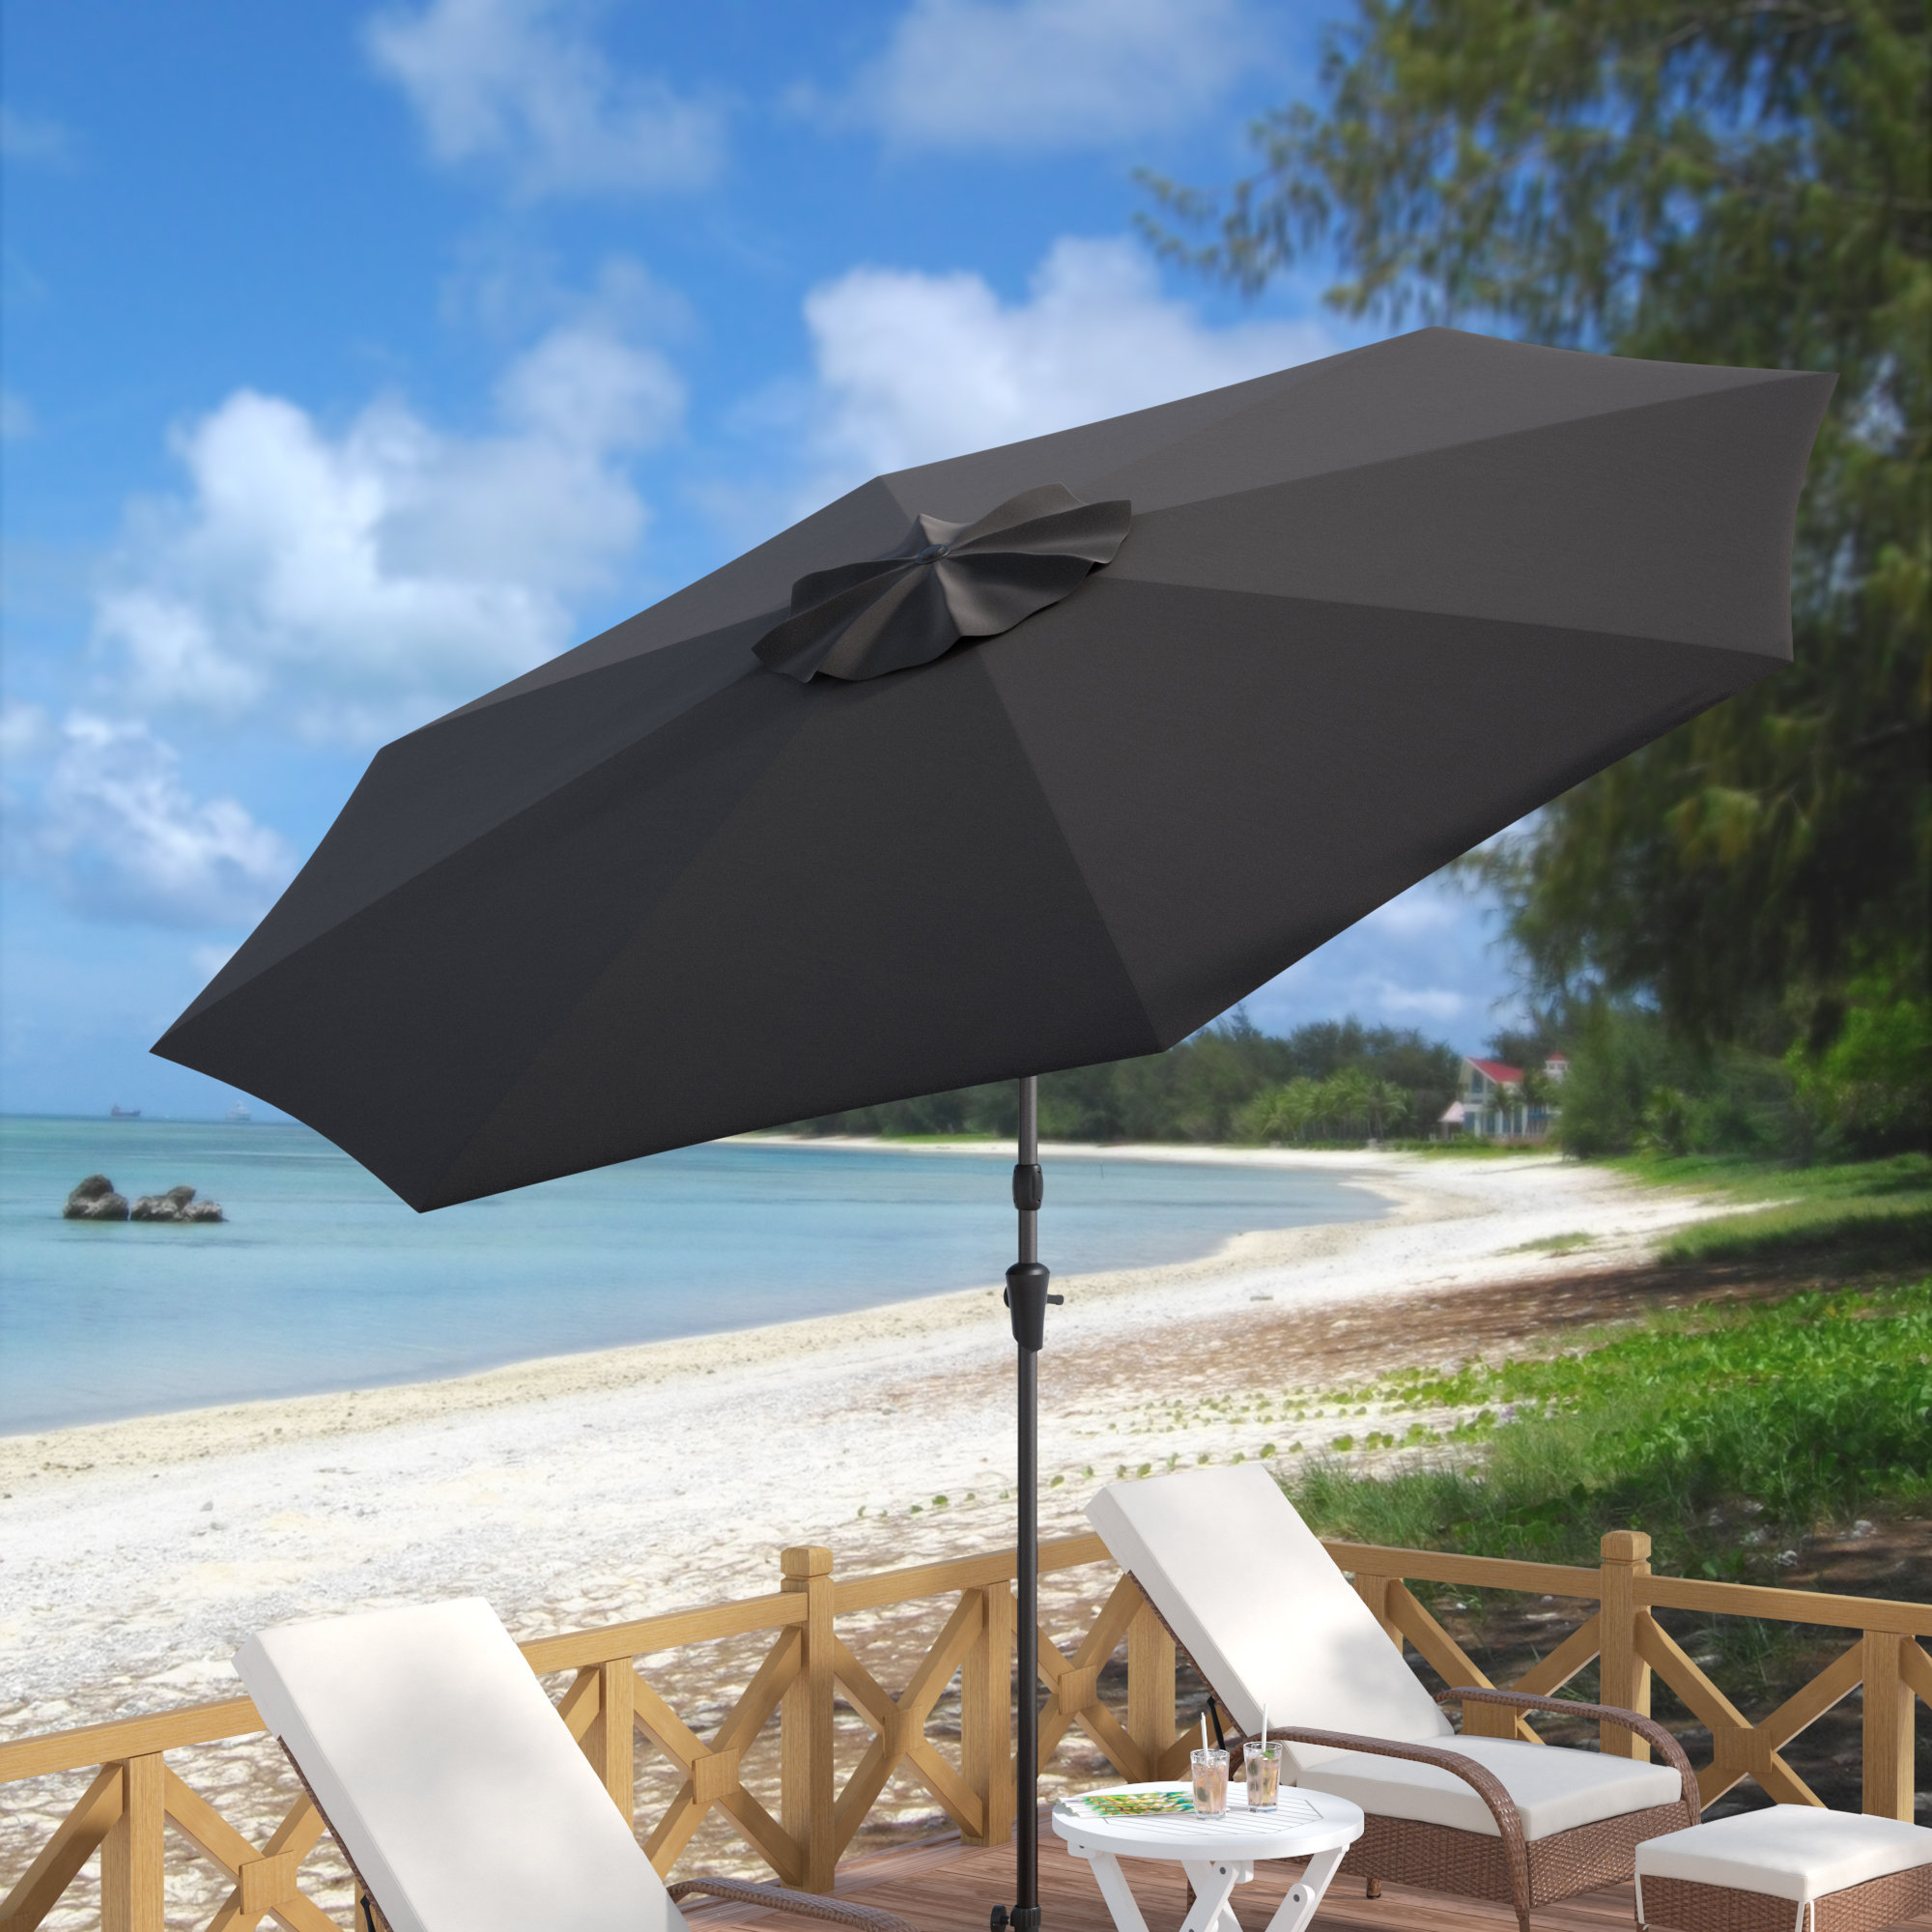 Julian Market Sunbrella Umbrellas With Regard To Fashionable Markley Market Beach Umbrella (View 12 of 20)